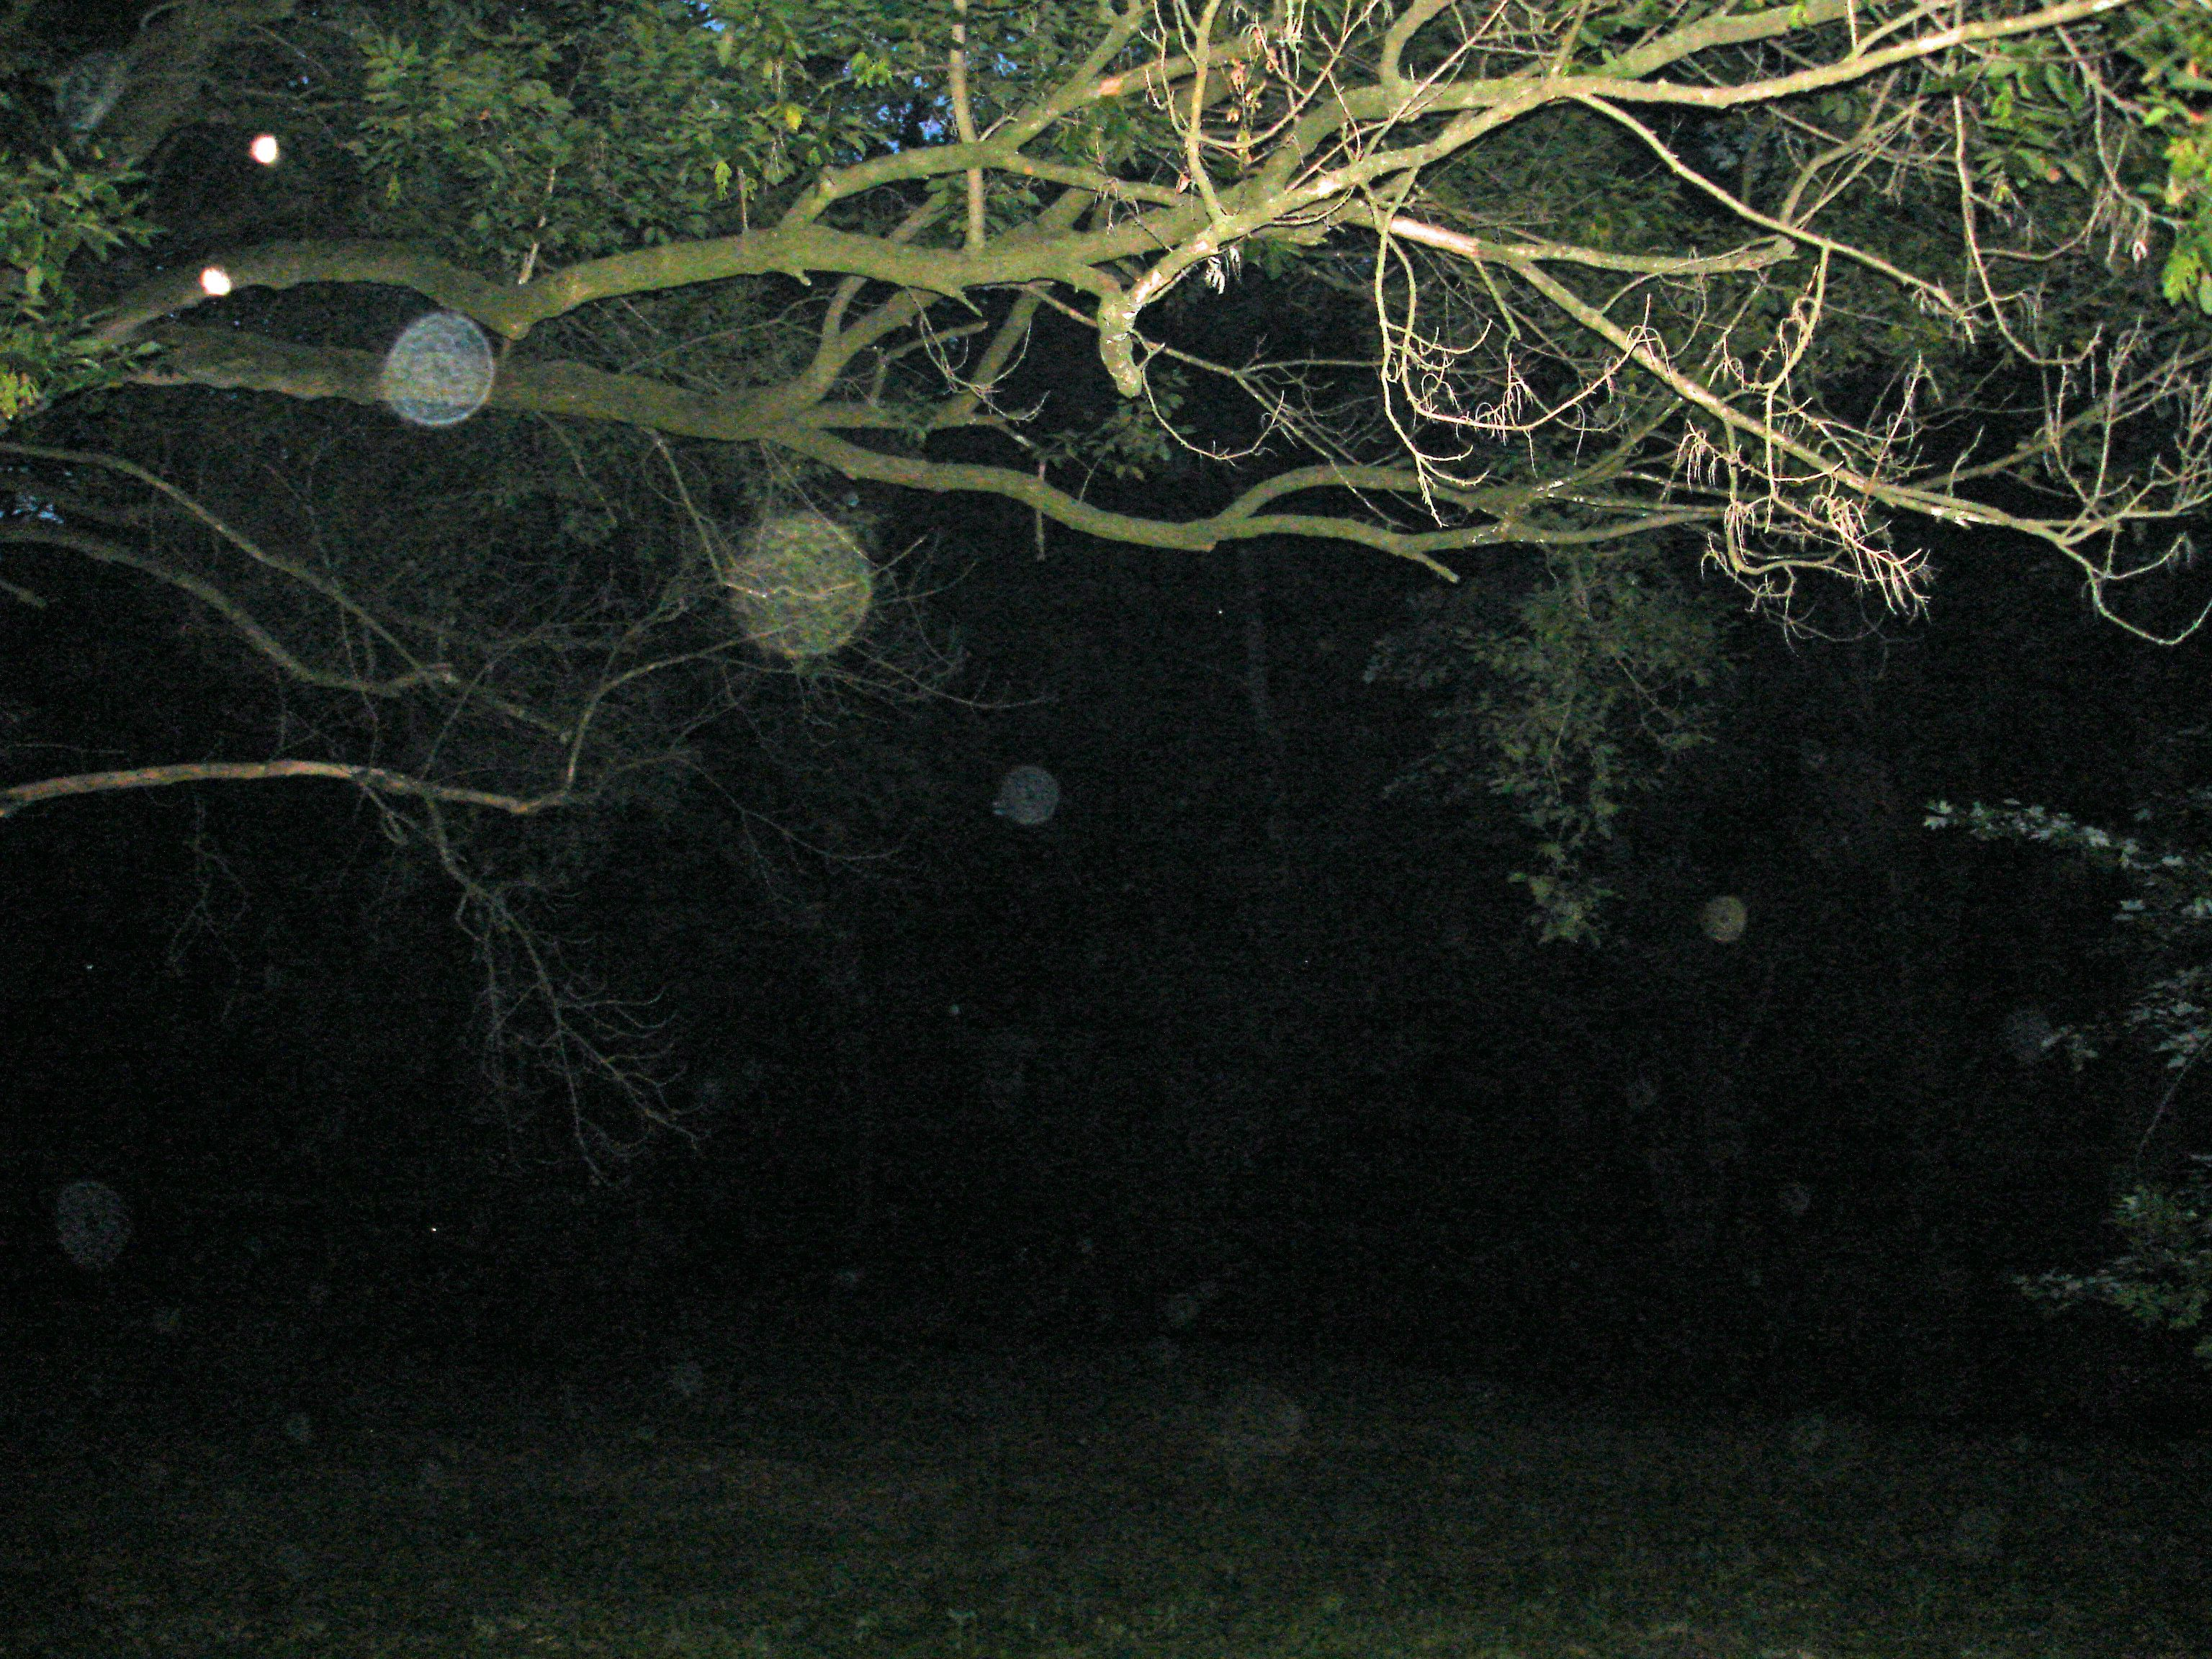 Our tree is busy with orbs and light anomalies. Aug. 8, 2012, Joanne Harper